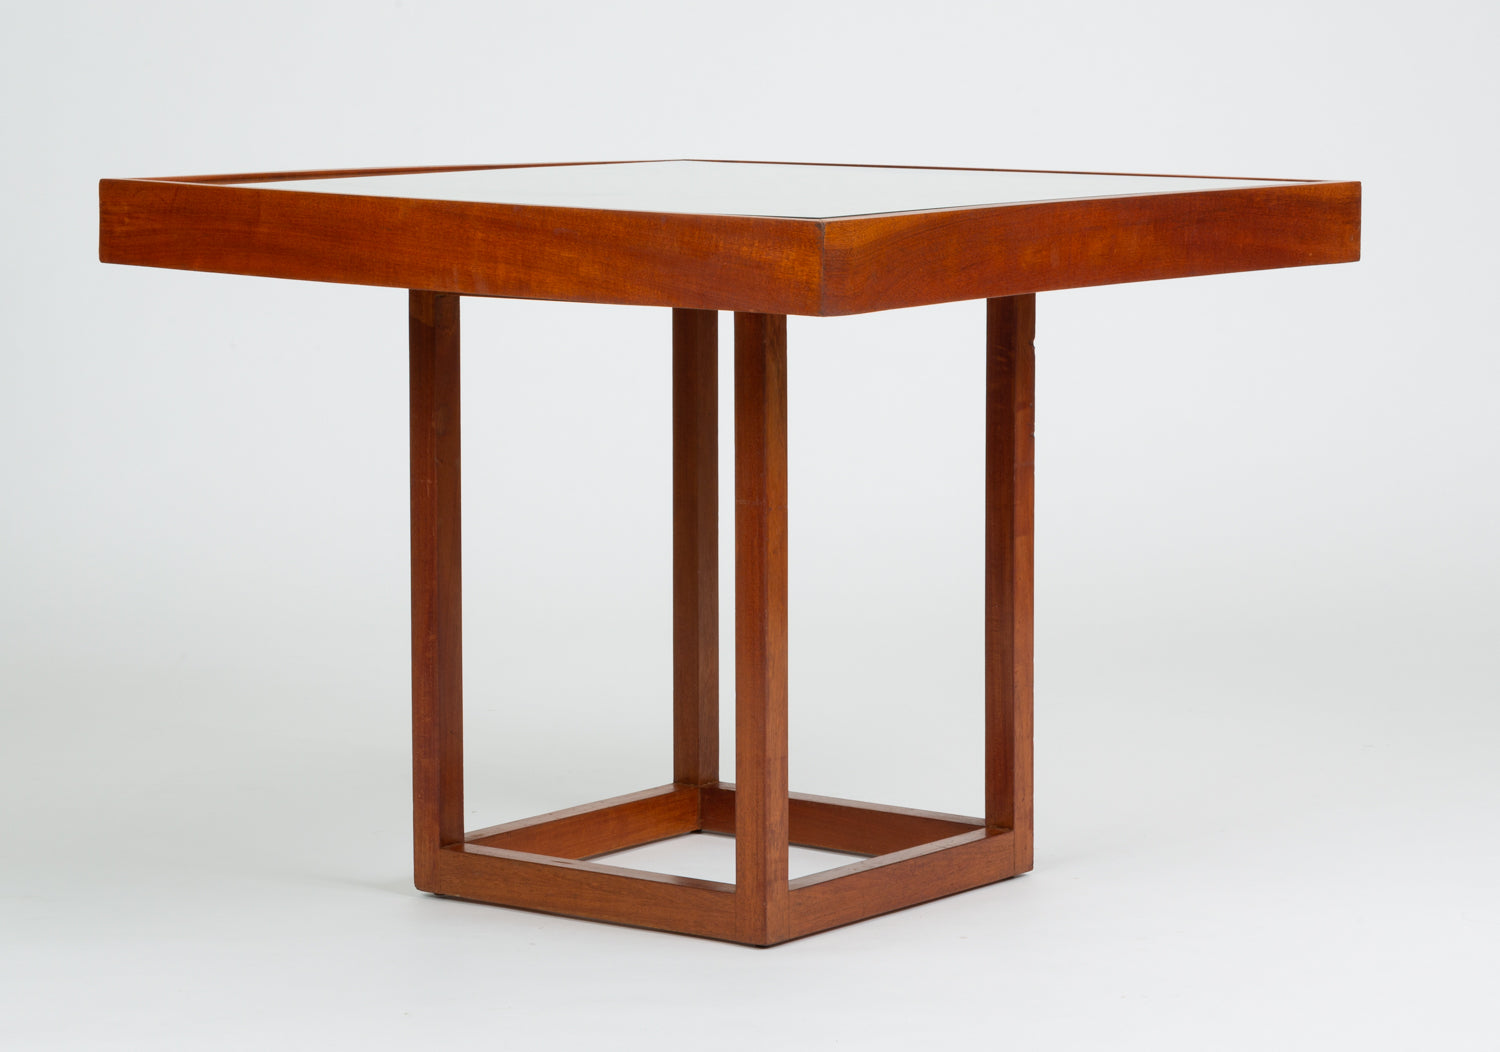 Mexican Modern Convertible Coffee Dining Table By Michael Van Beuren For Domus Mexico